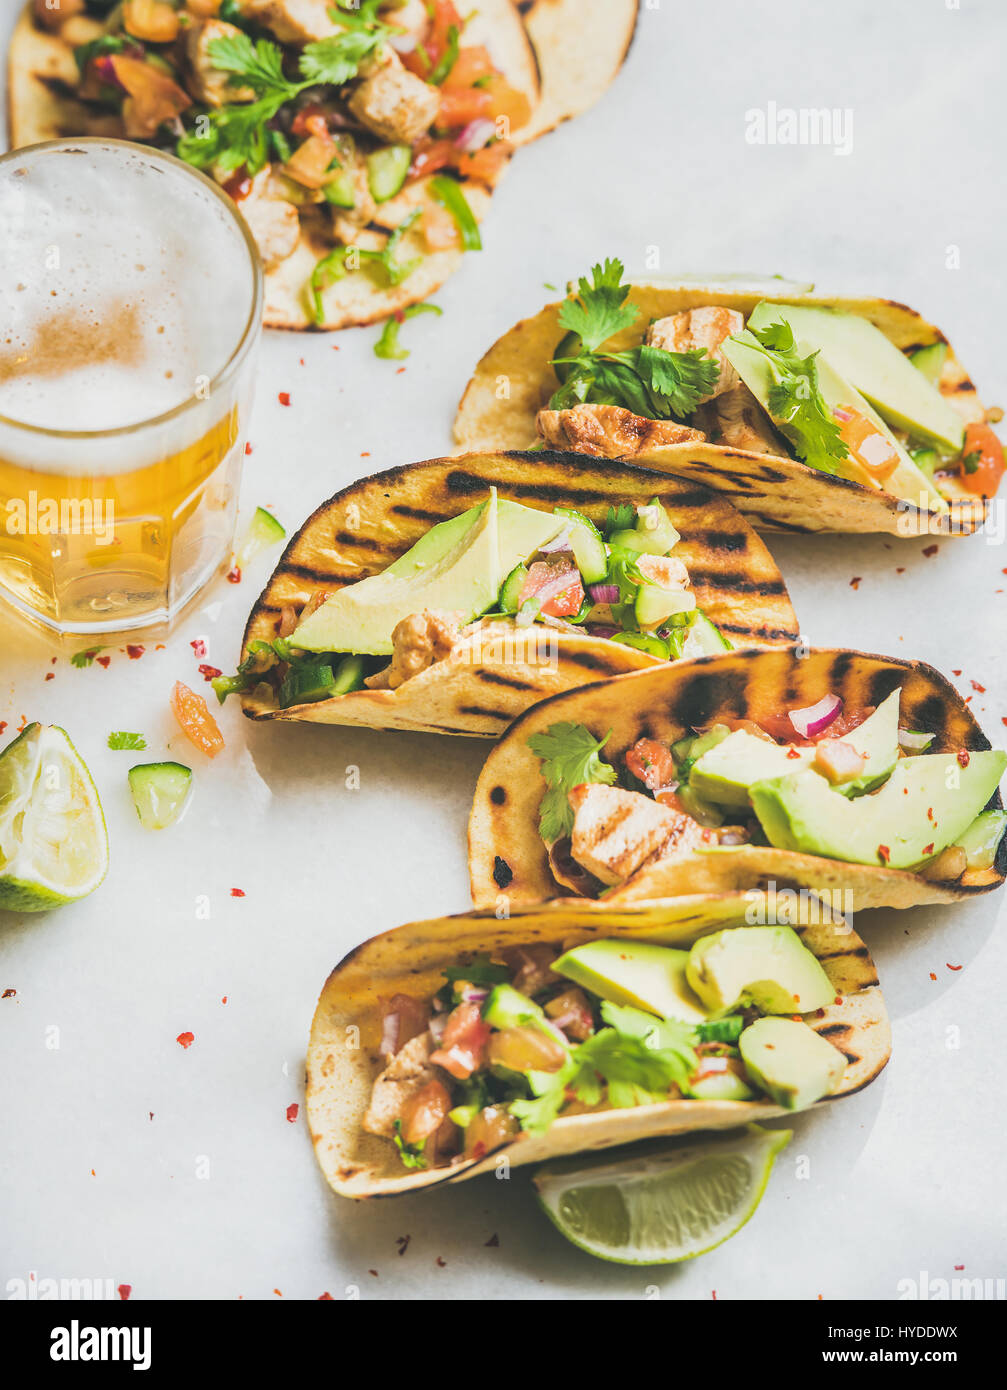 Healthy corn tortillas with grilled chicken fillet, avocado and beer - Stock Image